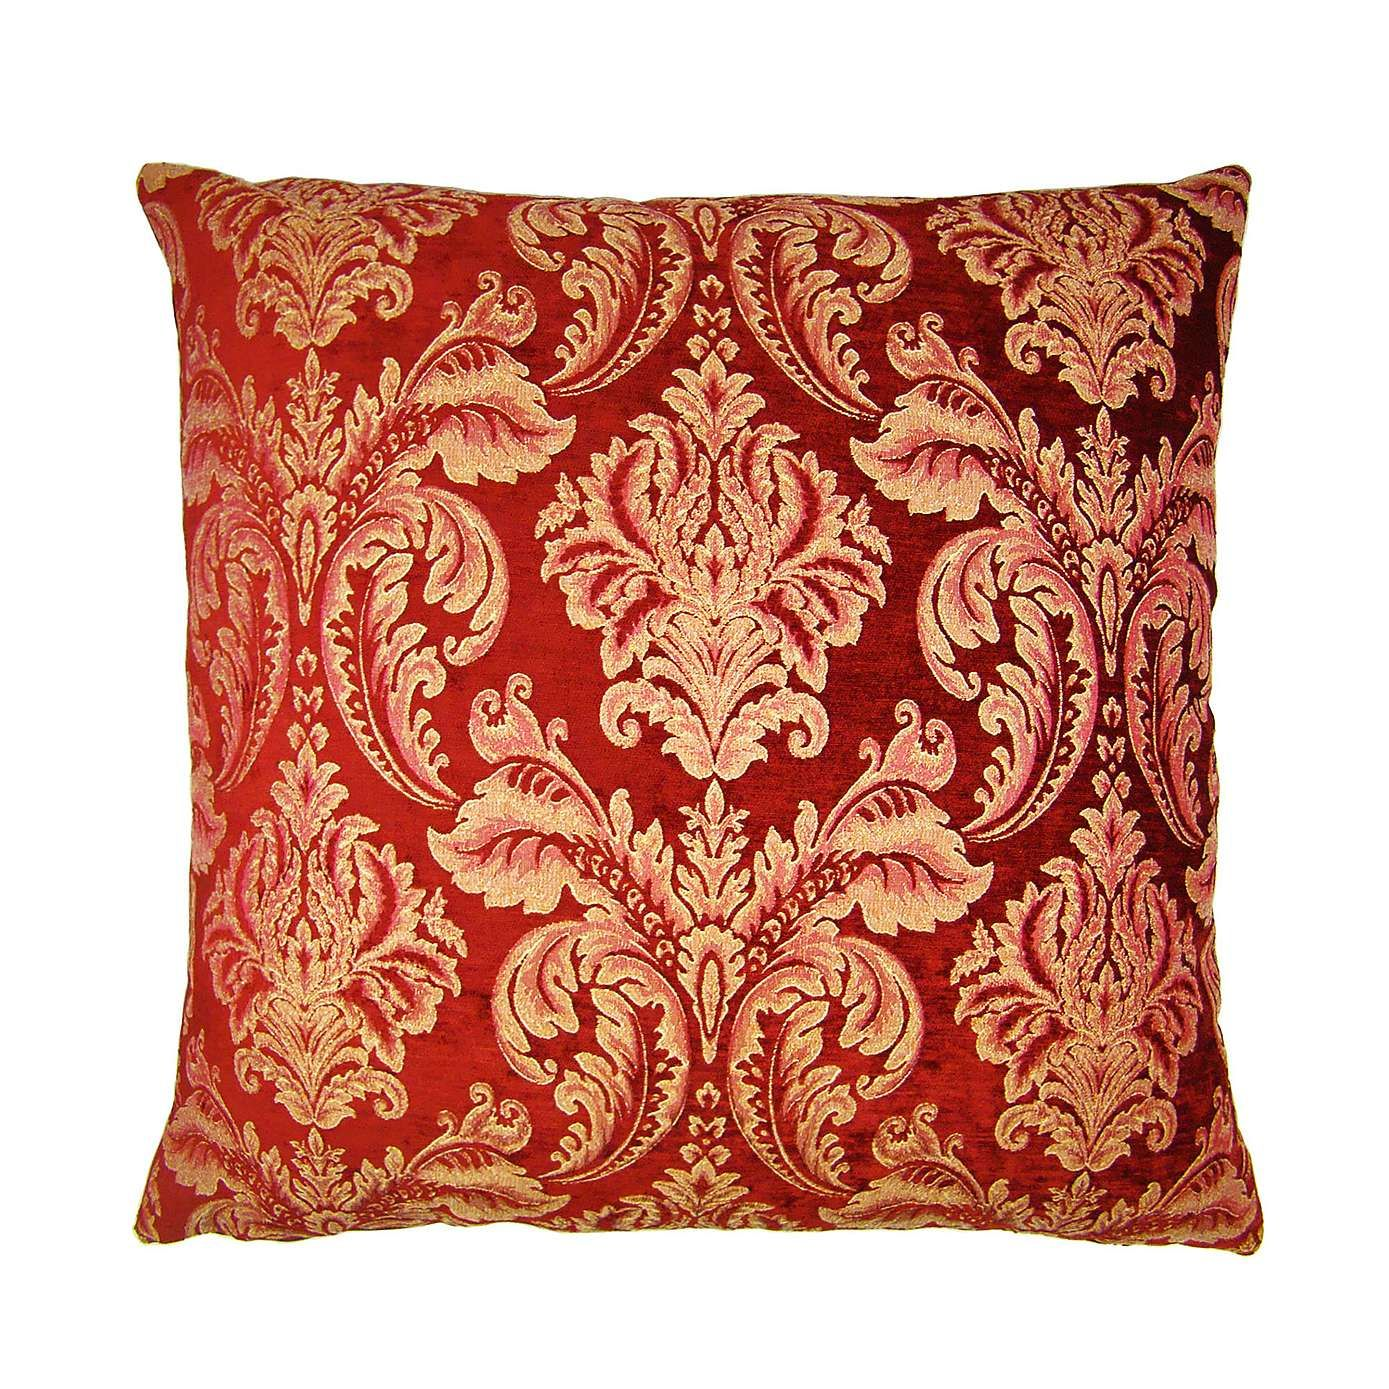 Scarlett Red Cushion Cover Dunelm Cushions & bobs